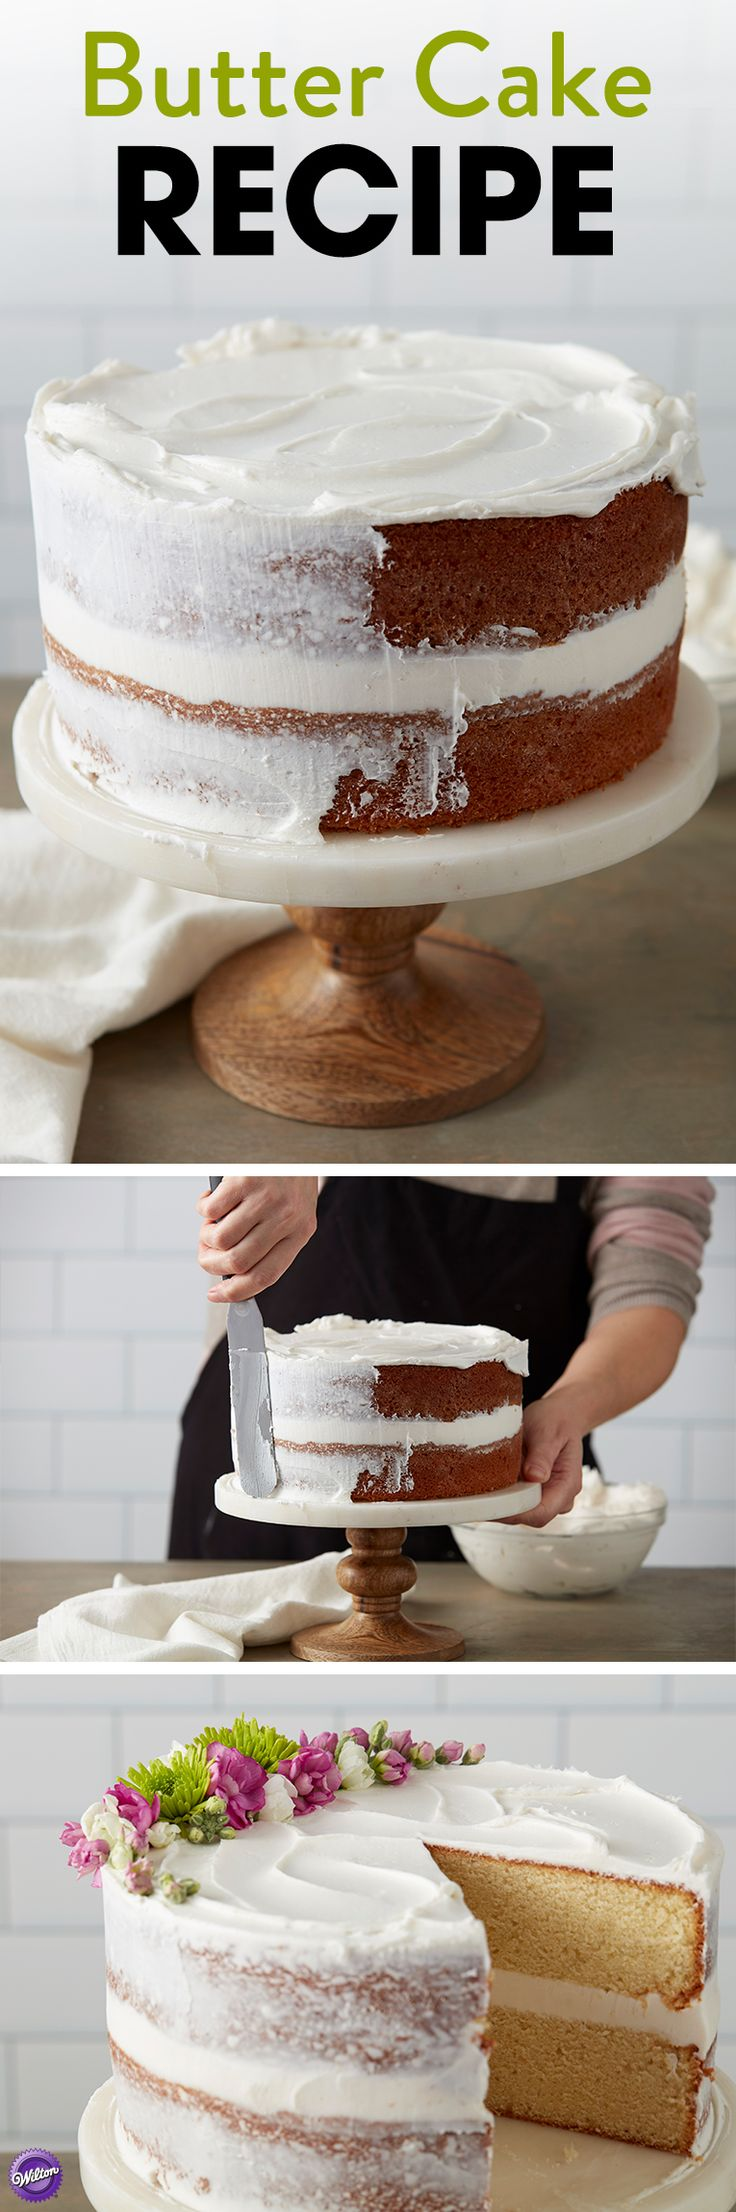 Butter Cake Recipe - This cake has a firm, moist texture that makes it perfect for tiered designs. We've added almond flavor to give it a richer taste everyone will love.